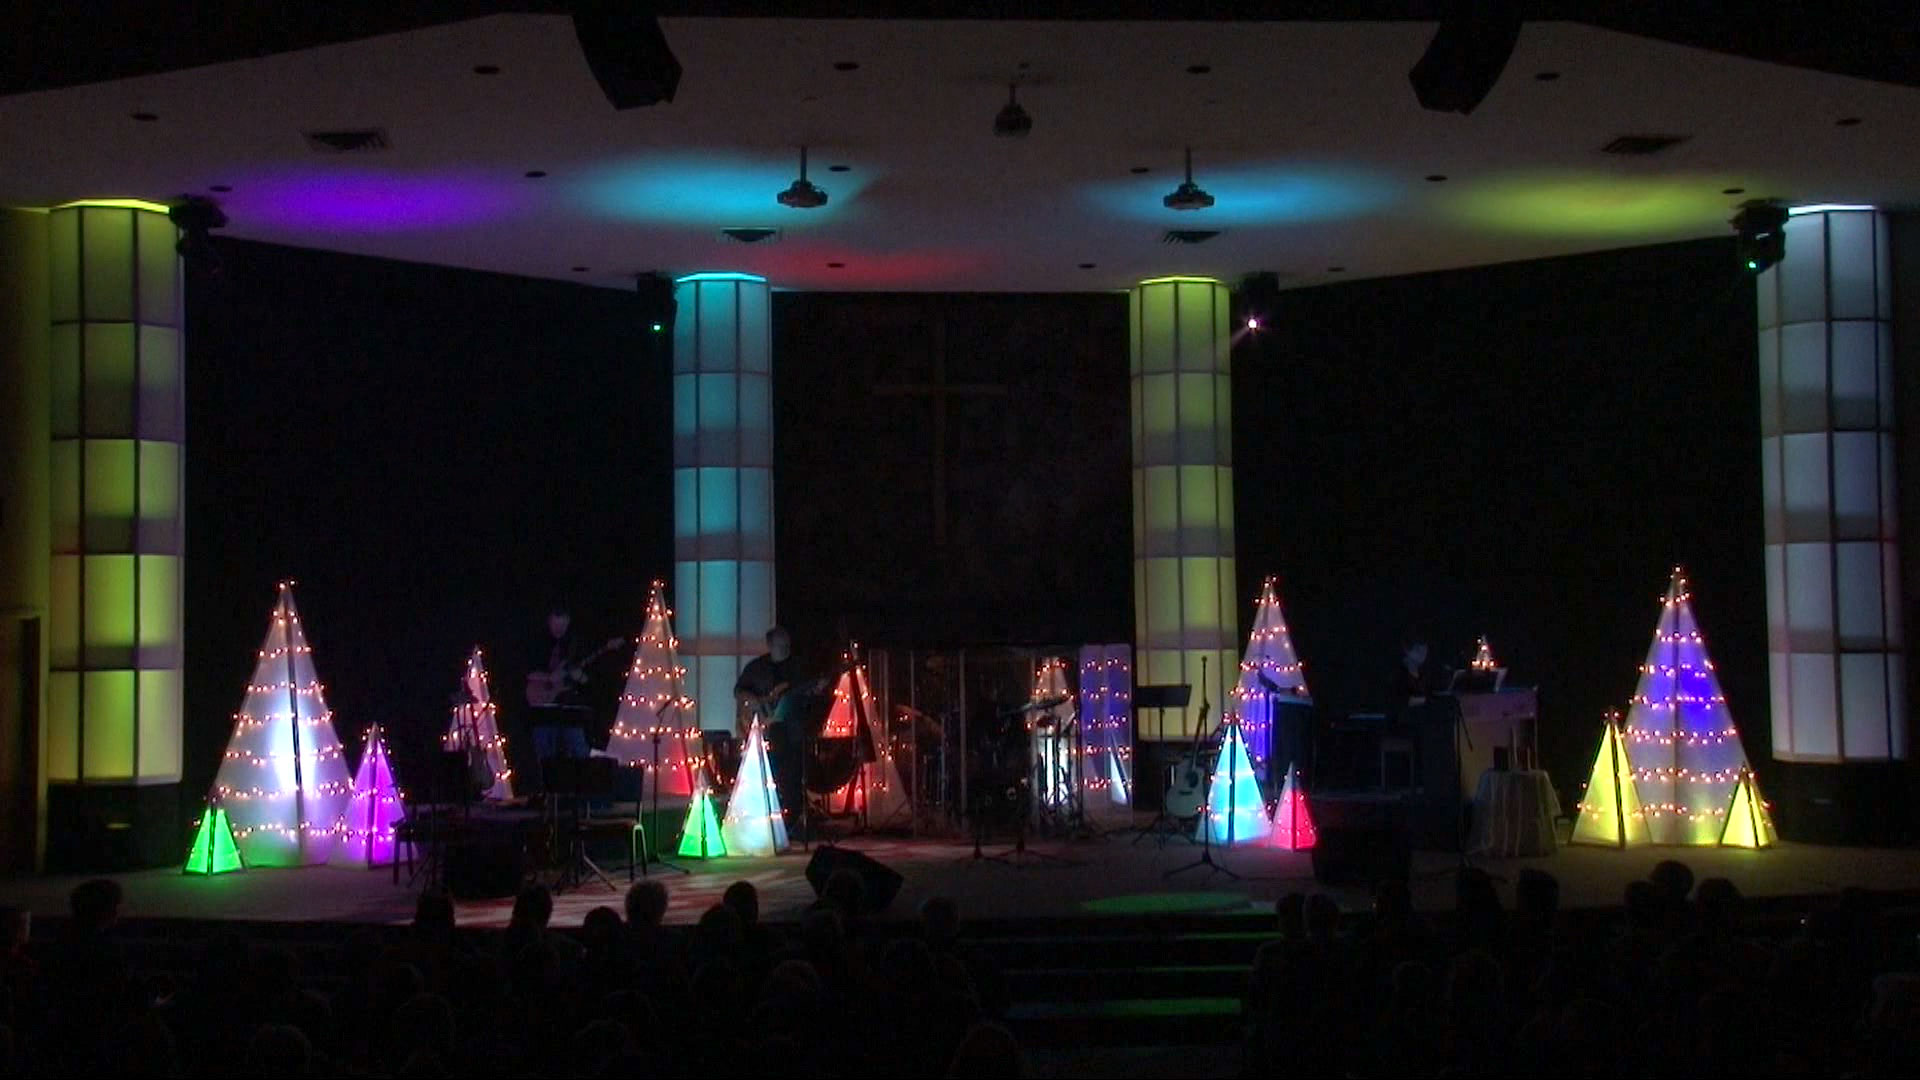 Stage Decoration Ideas Design A Christmas Tri Church Stage Design Ideas